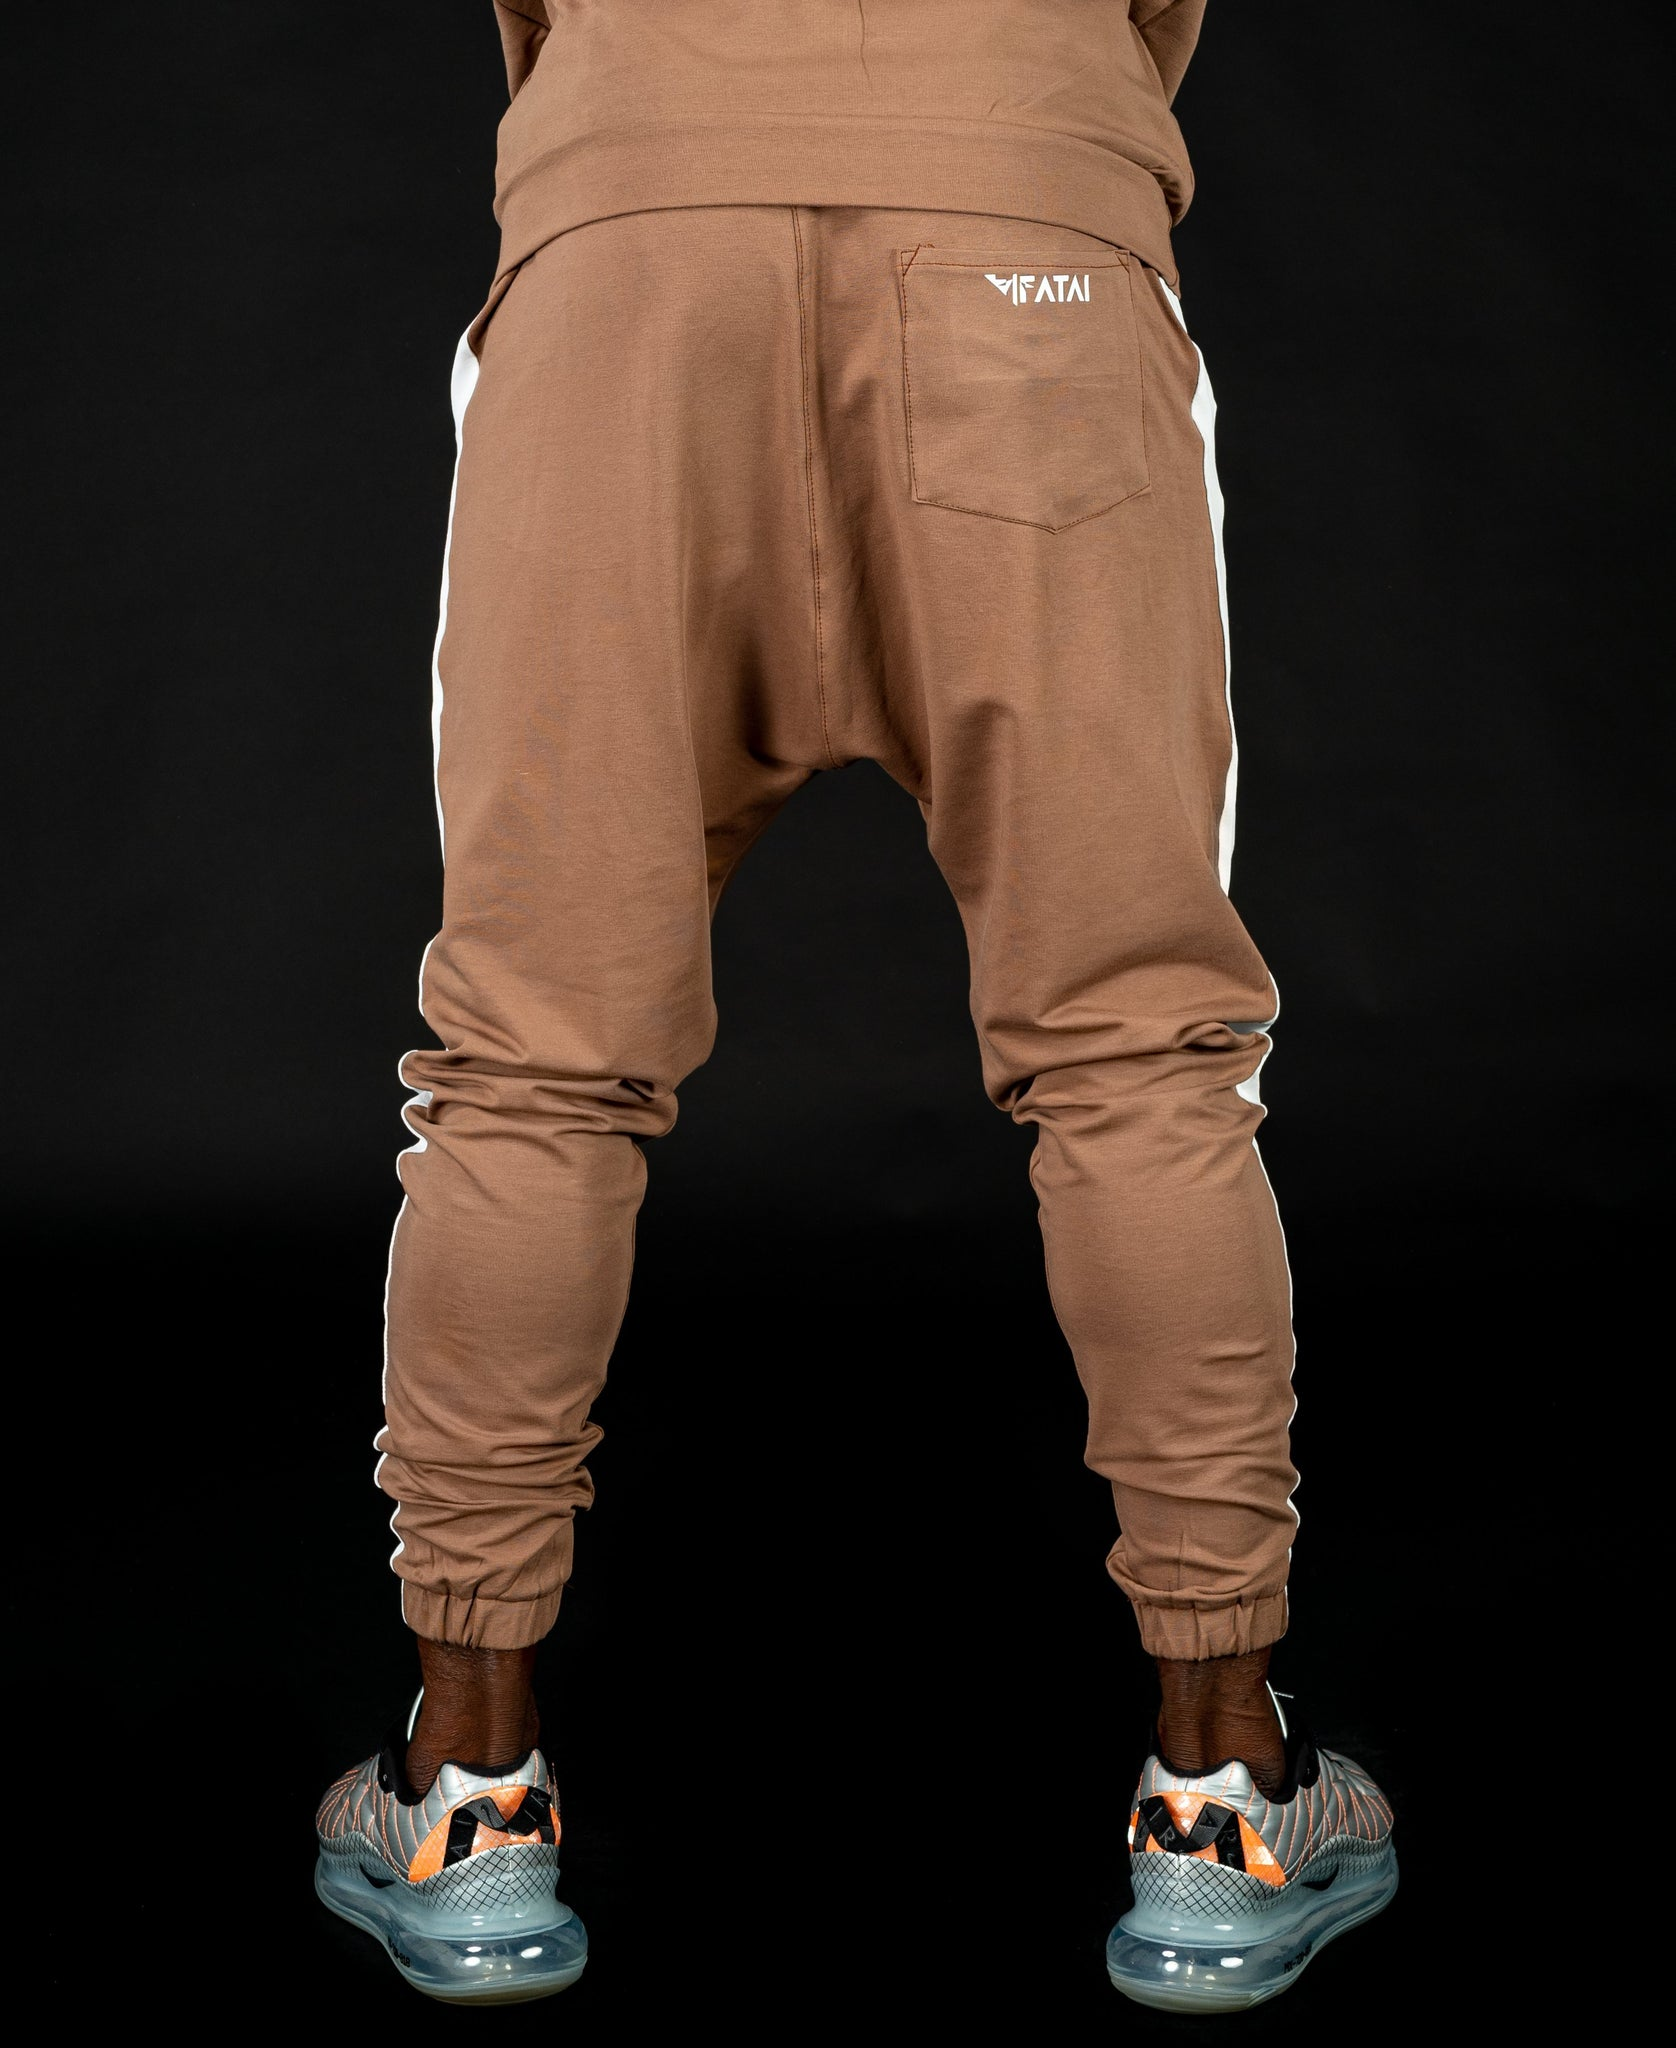 Brown trousers with white line - Fatai Style